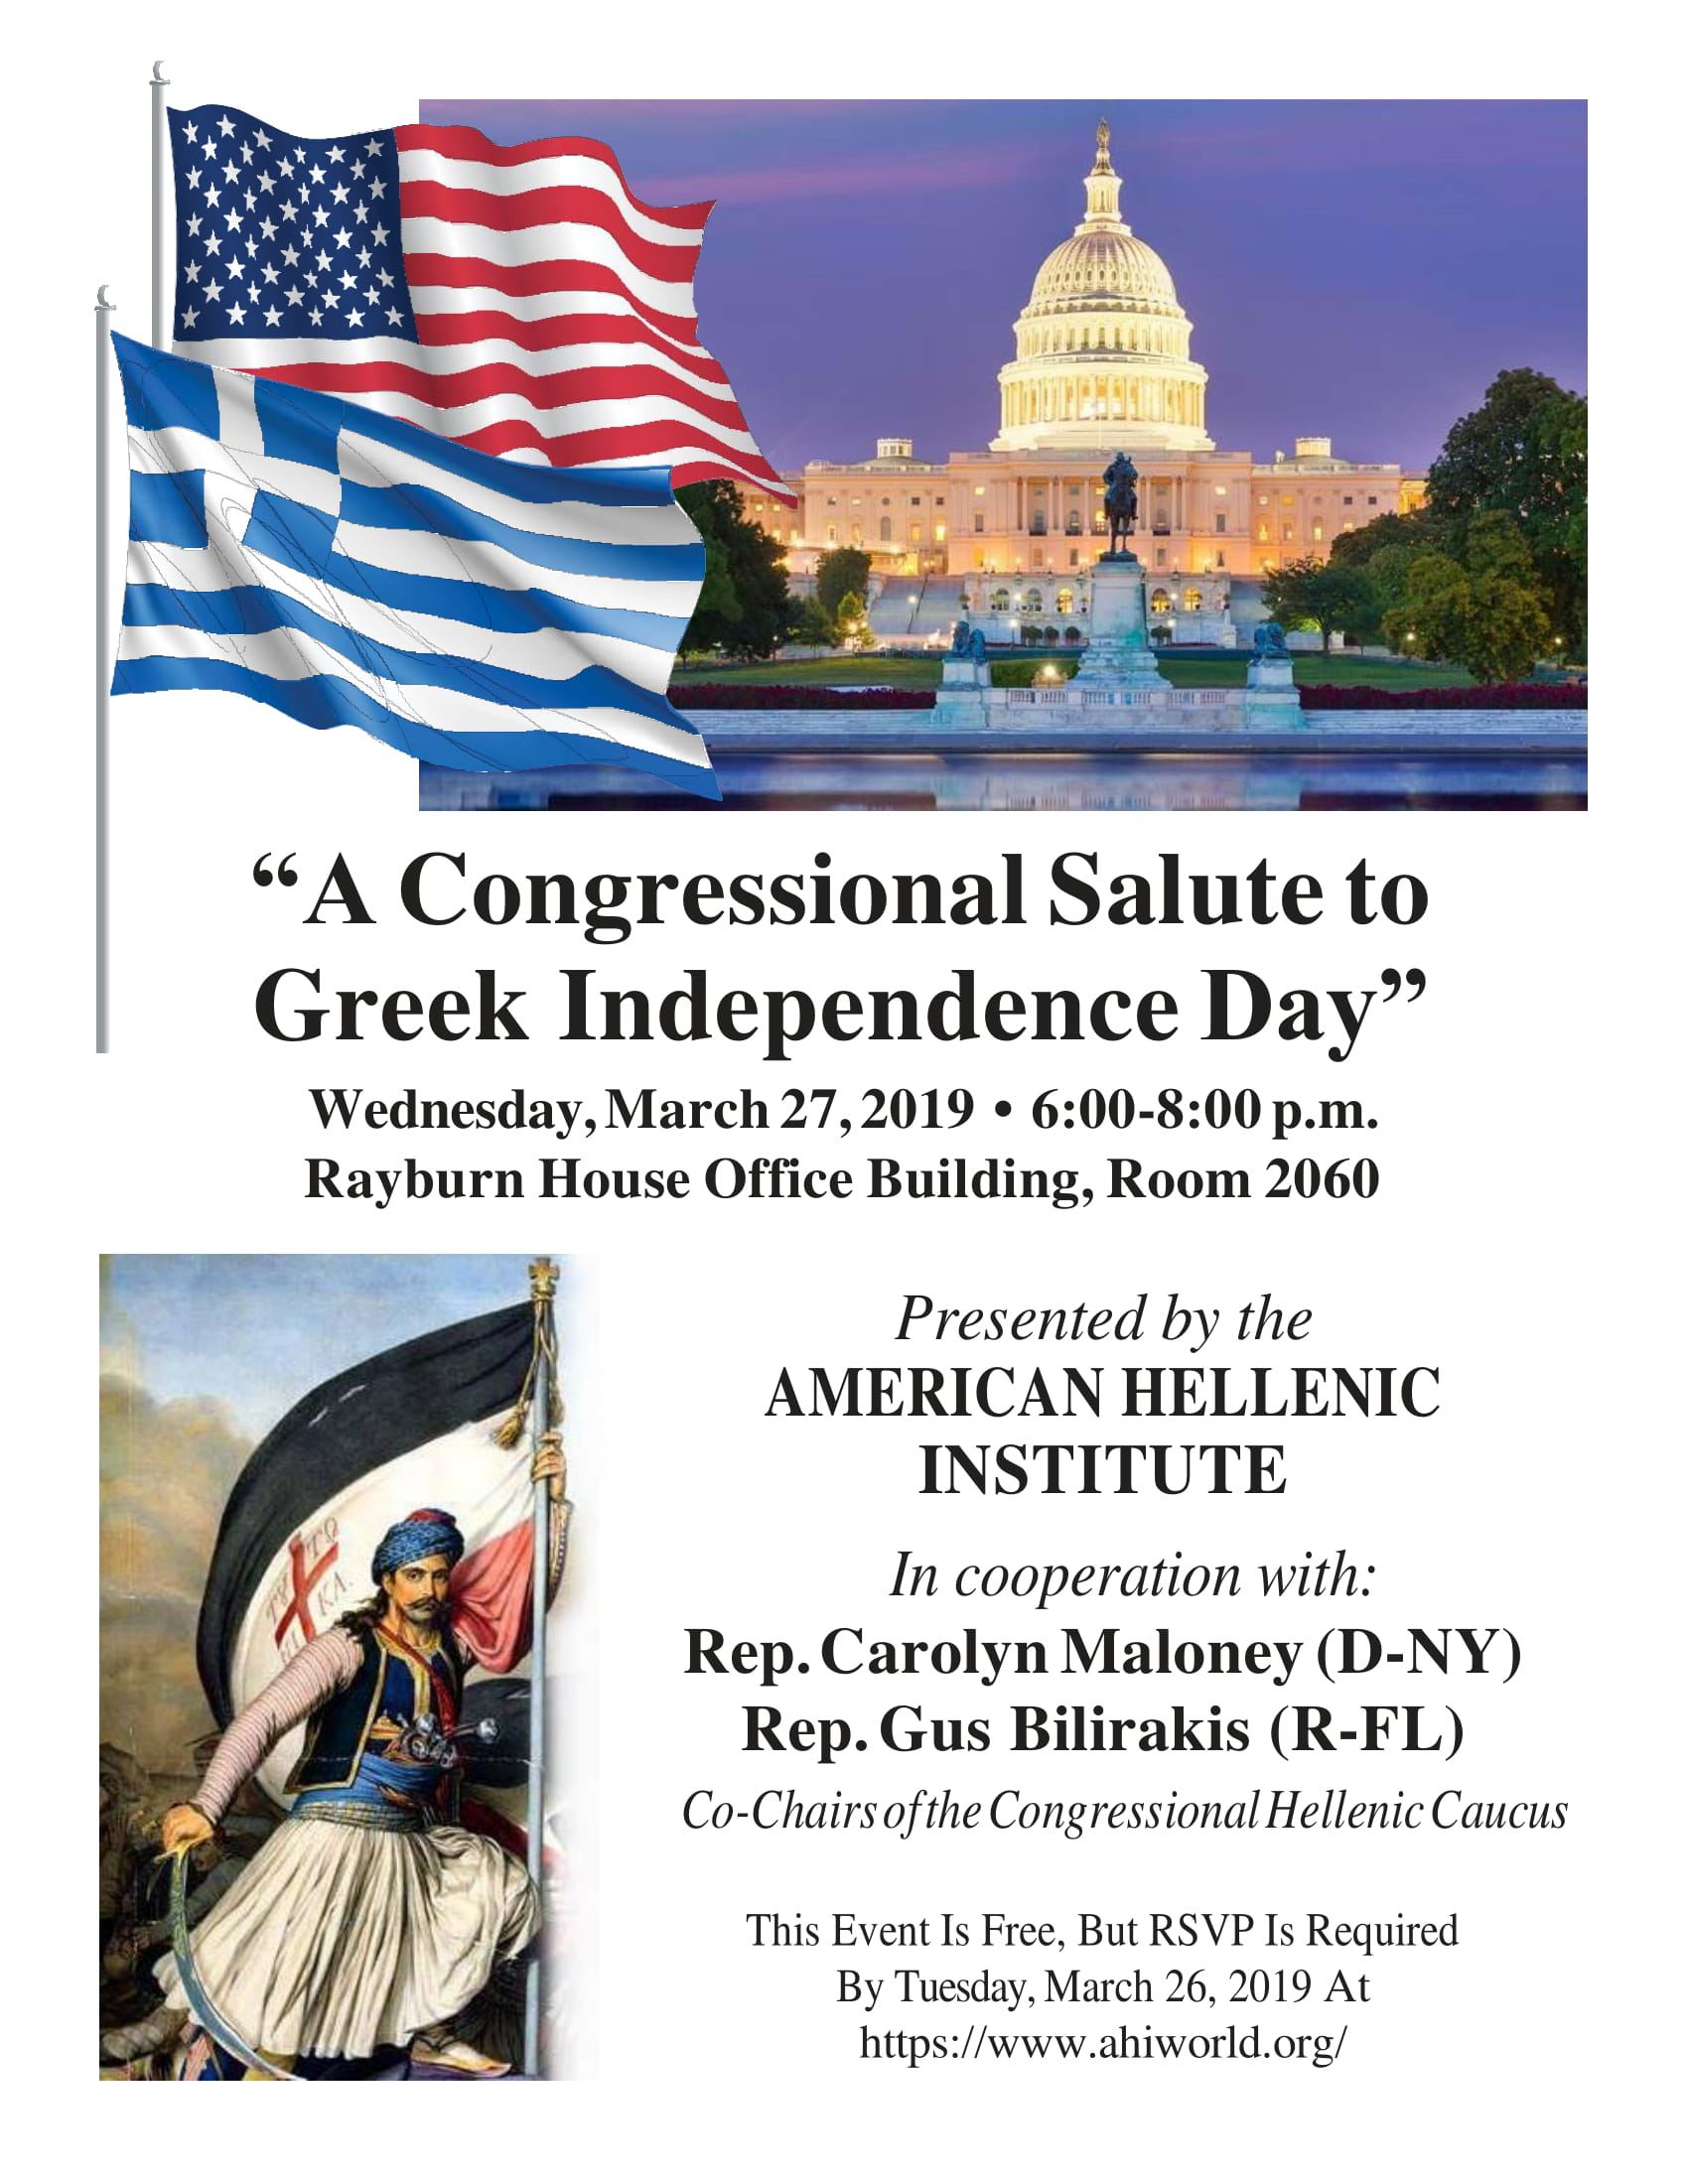 AHI Congressional_Greek Independence 2019 Flyer jpg-1.jpg